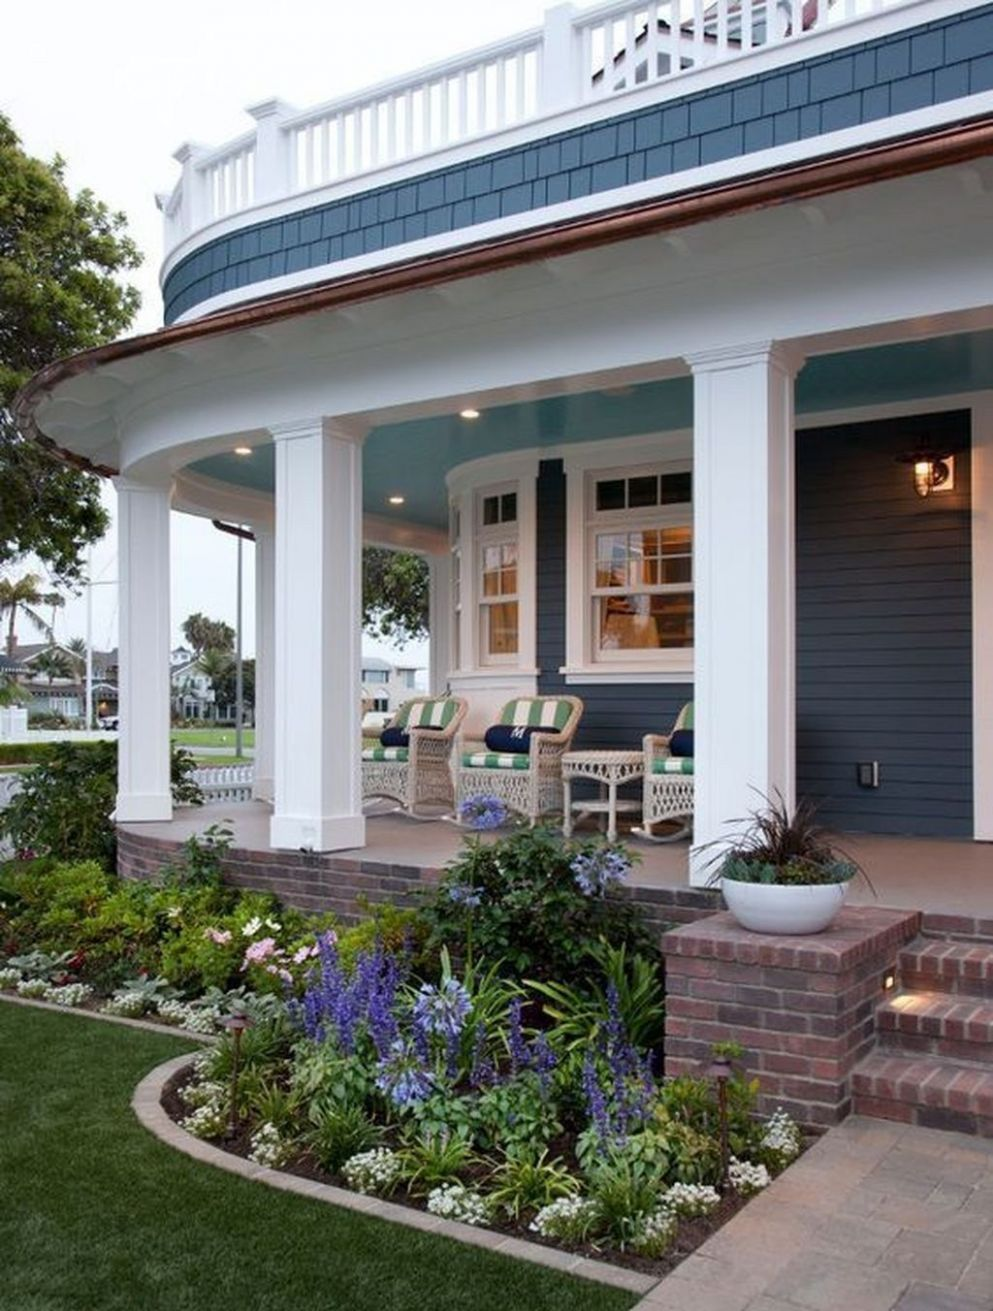 Cool Front Yard Rock Garden Landscaping Ideas 11 | Front porch ...